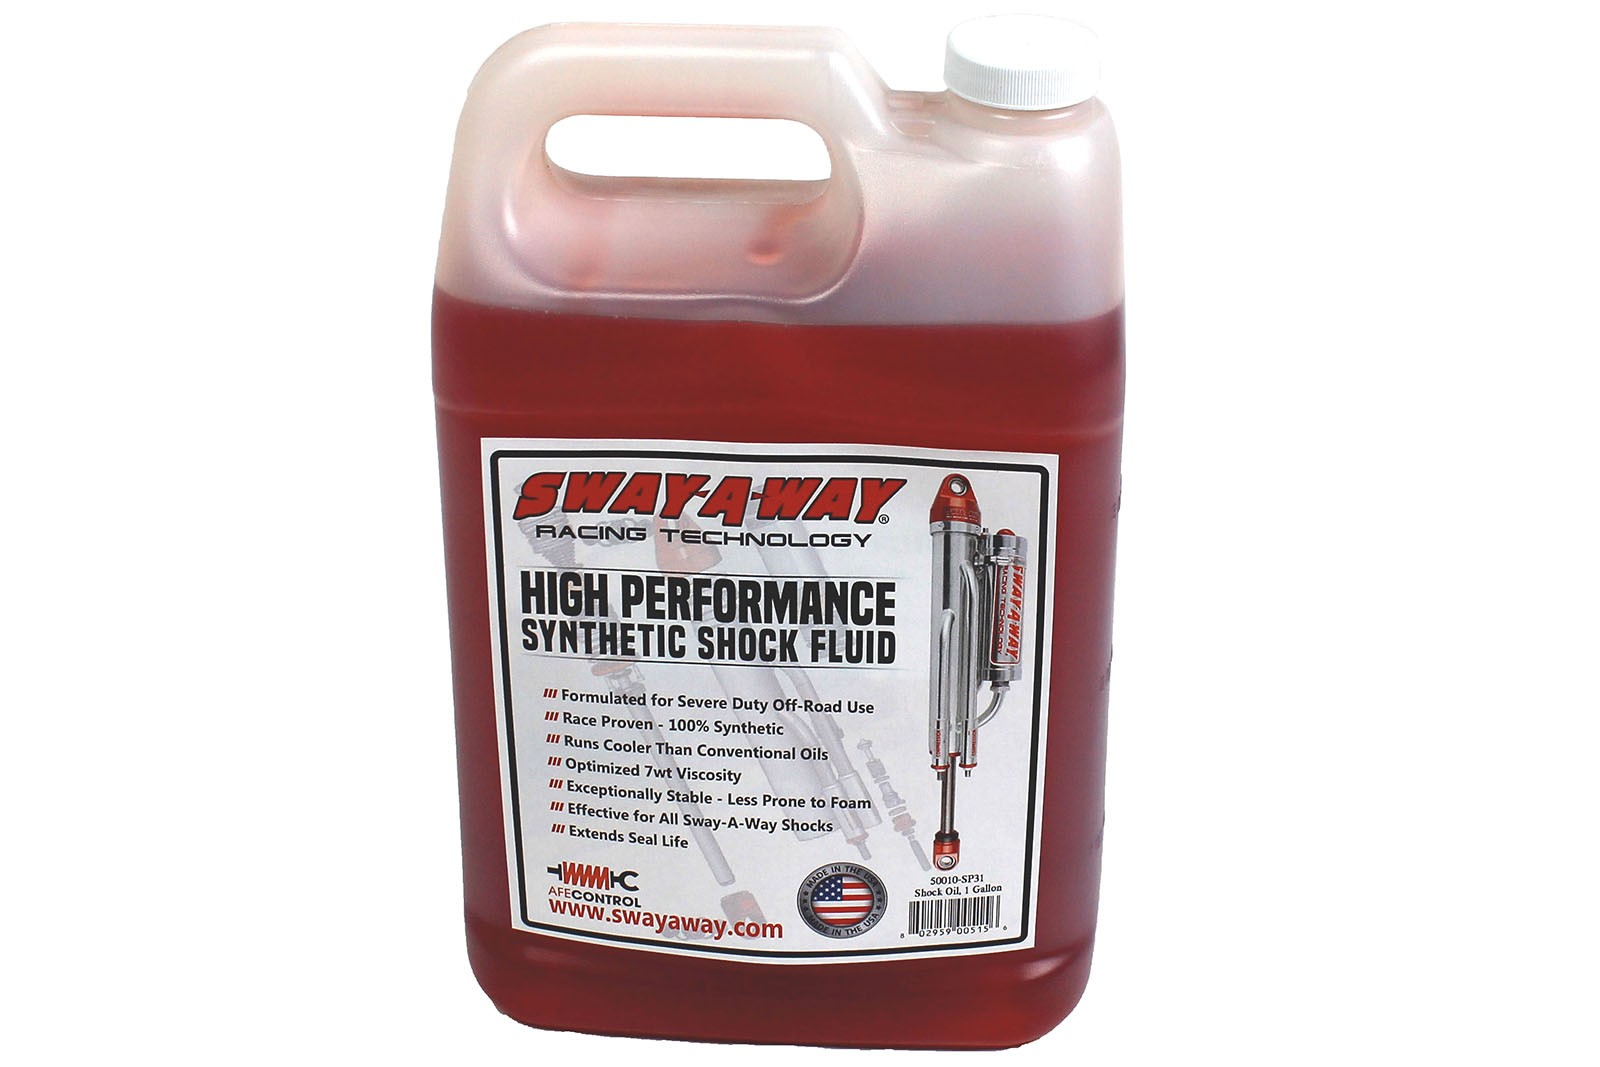 aFe Control Sway-A-Way Shock Oil, 1 Gallon